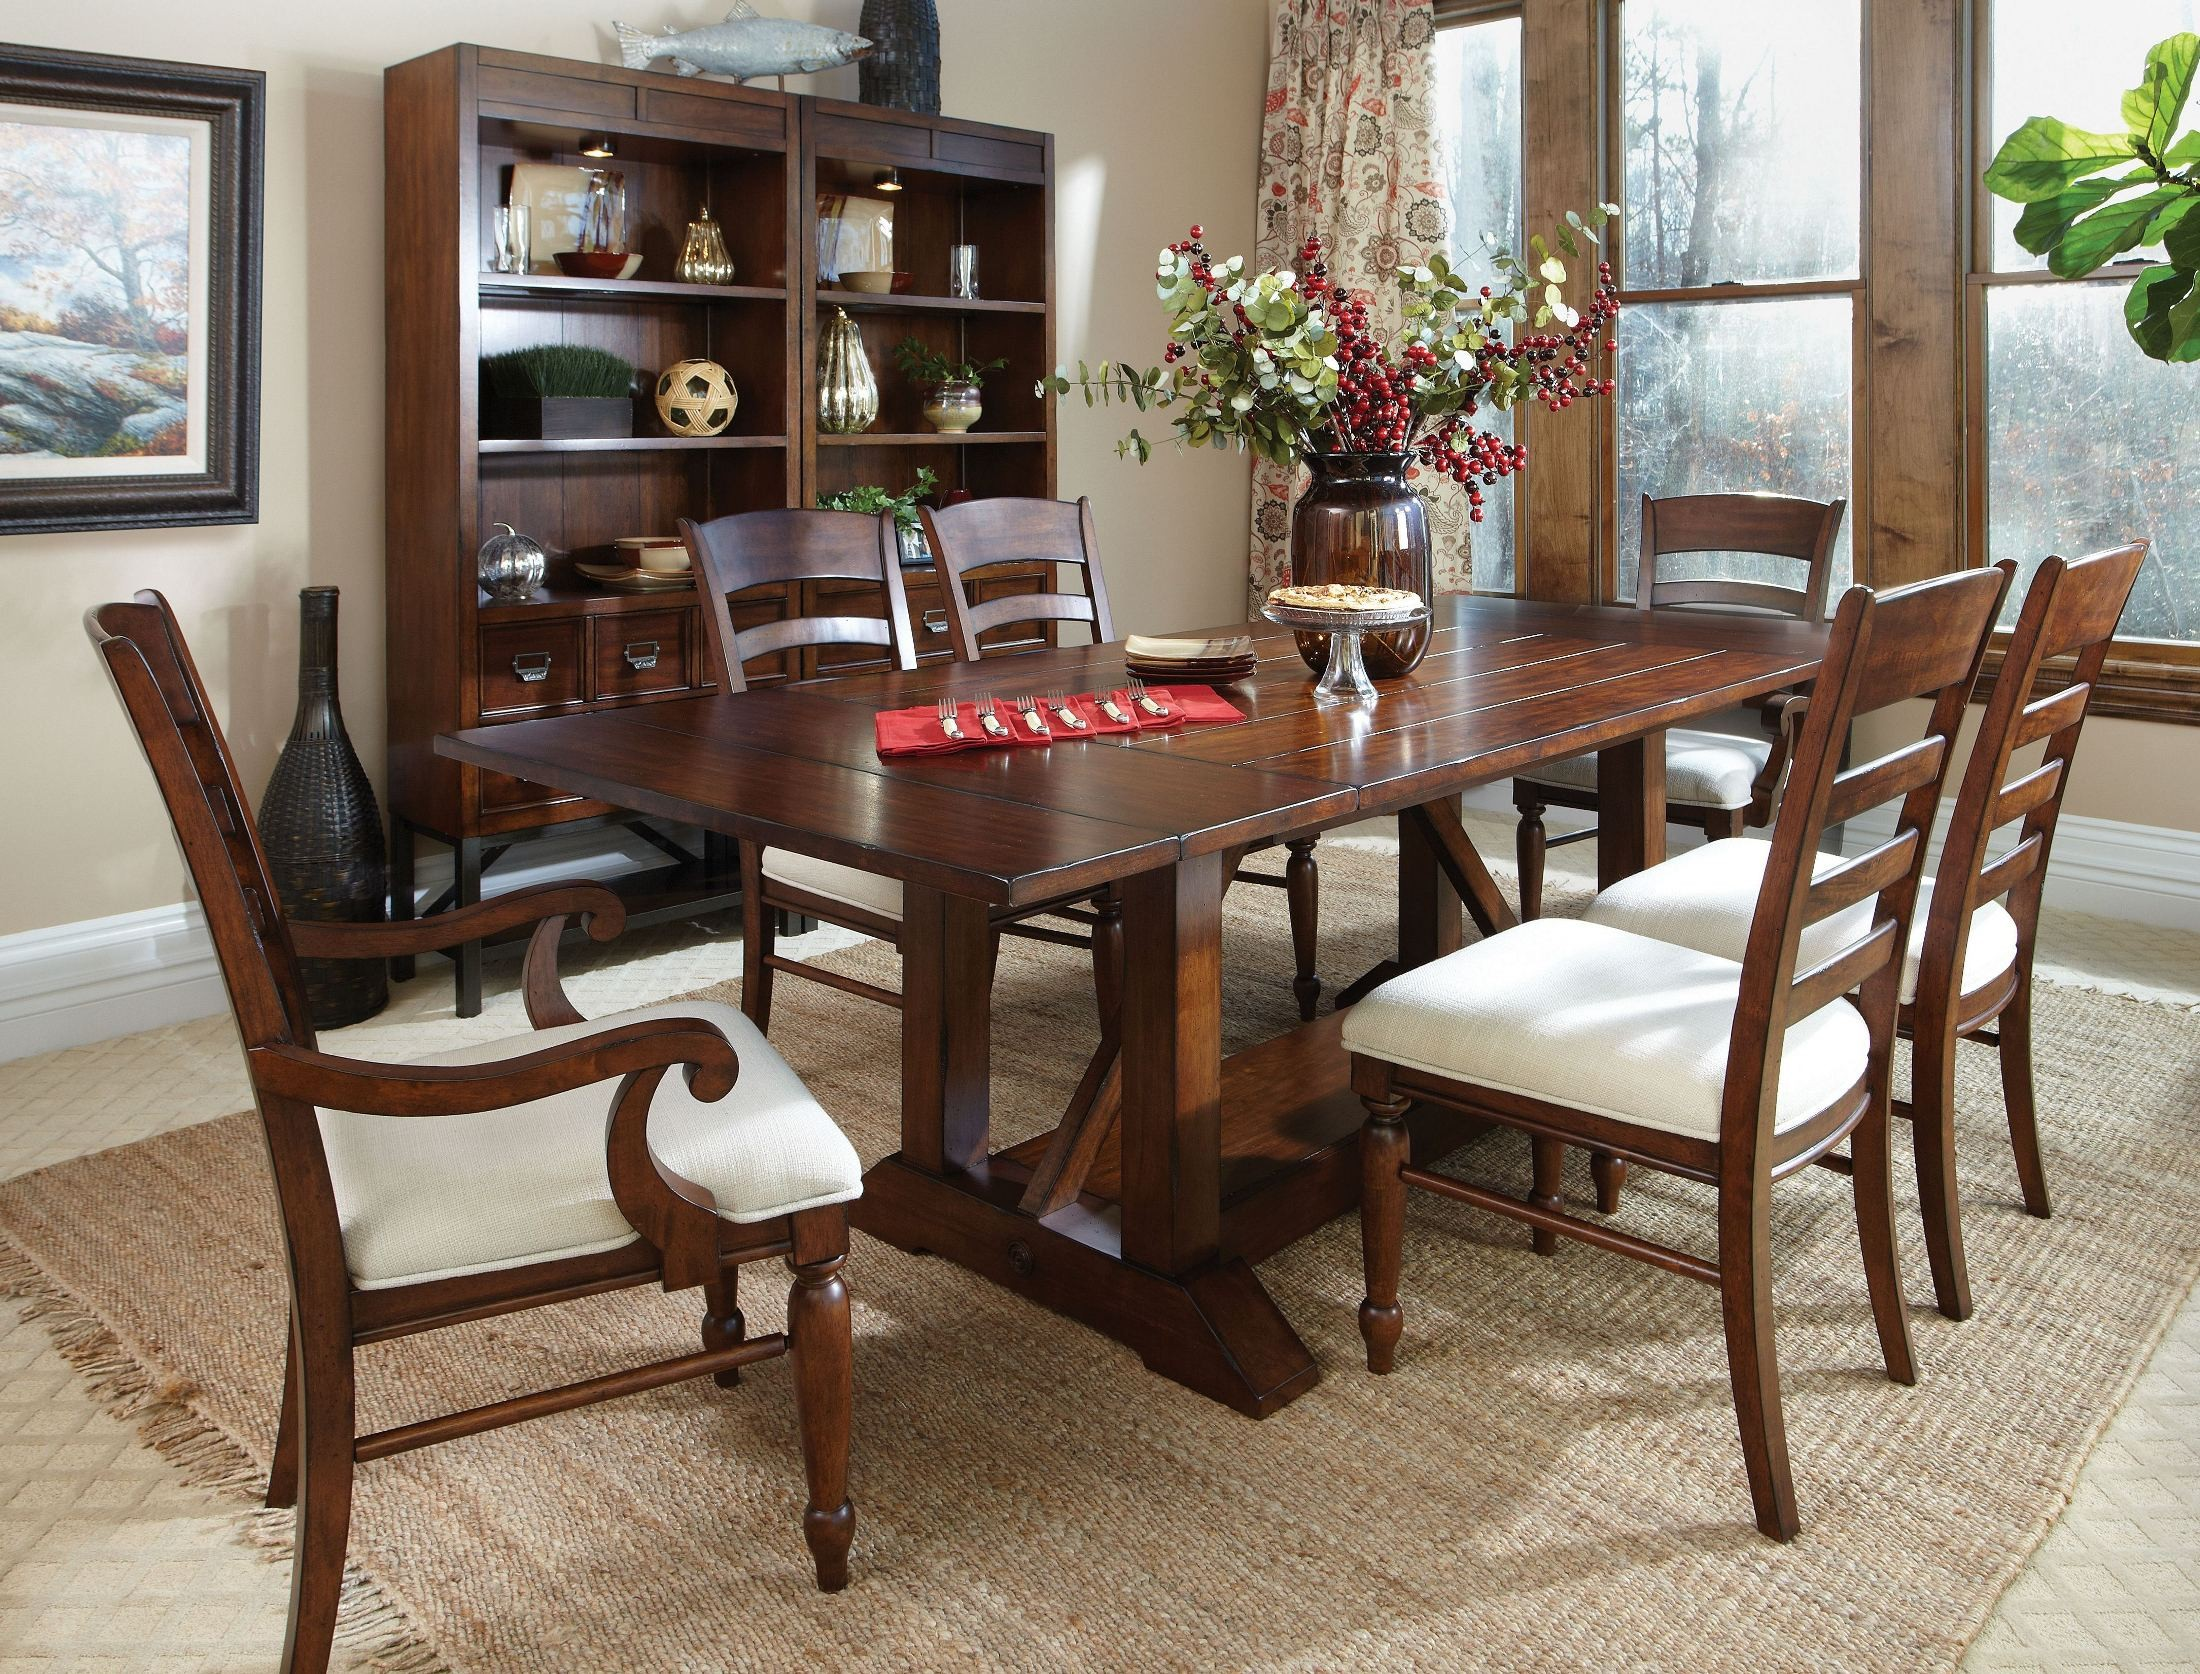 Blue ridge trestle storage dining room set 426 096 012013180532 klaussner - Dining room sets with storage ...